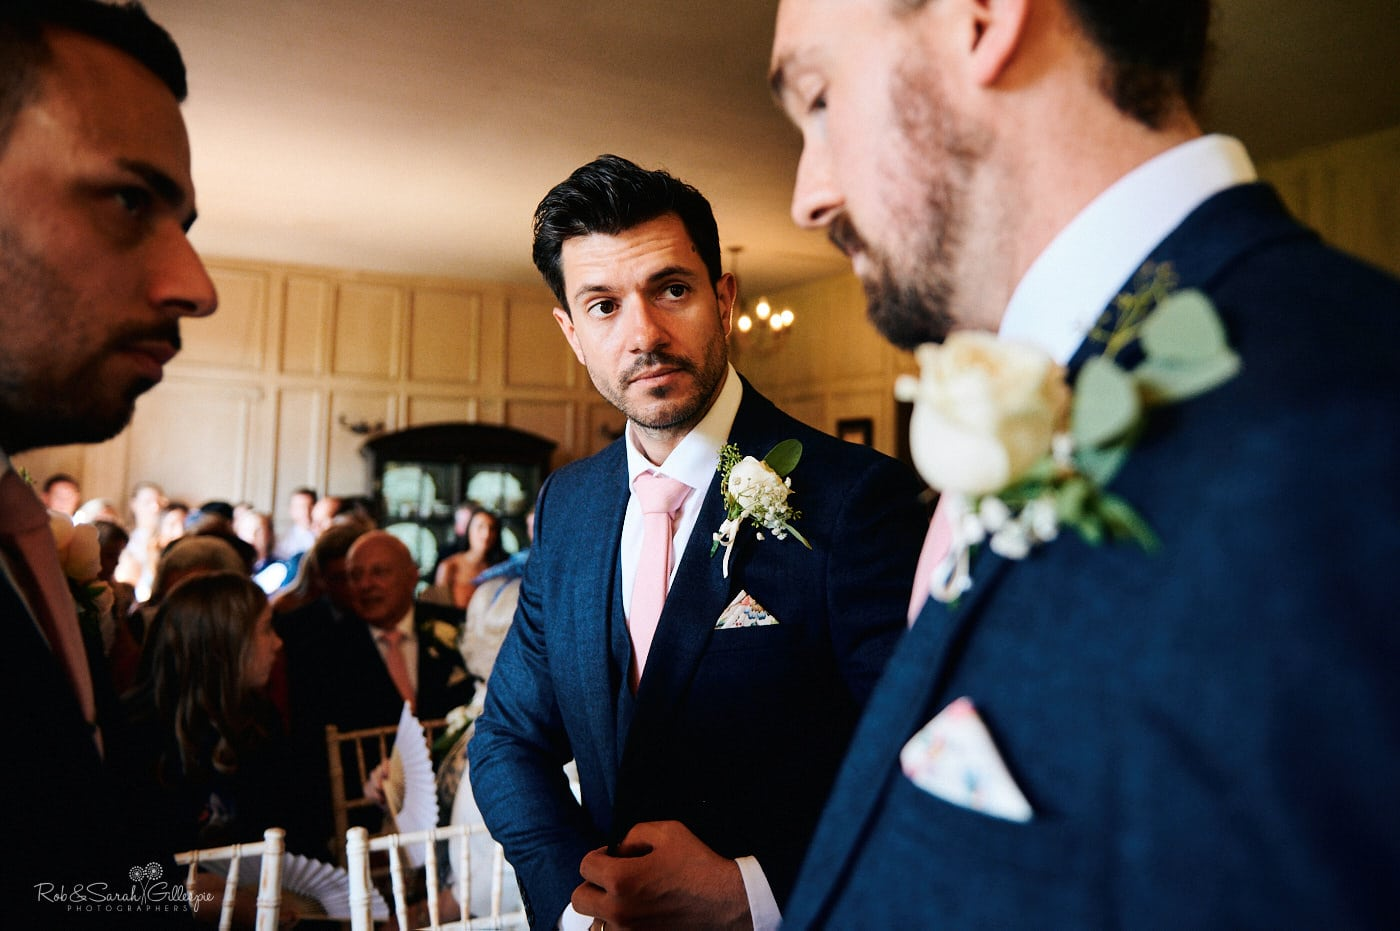 Best man talks to groom before wedding ceremony